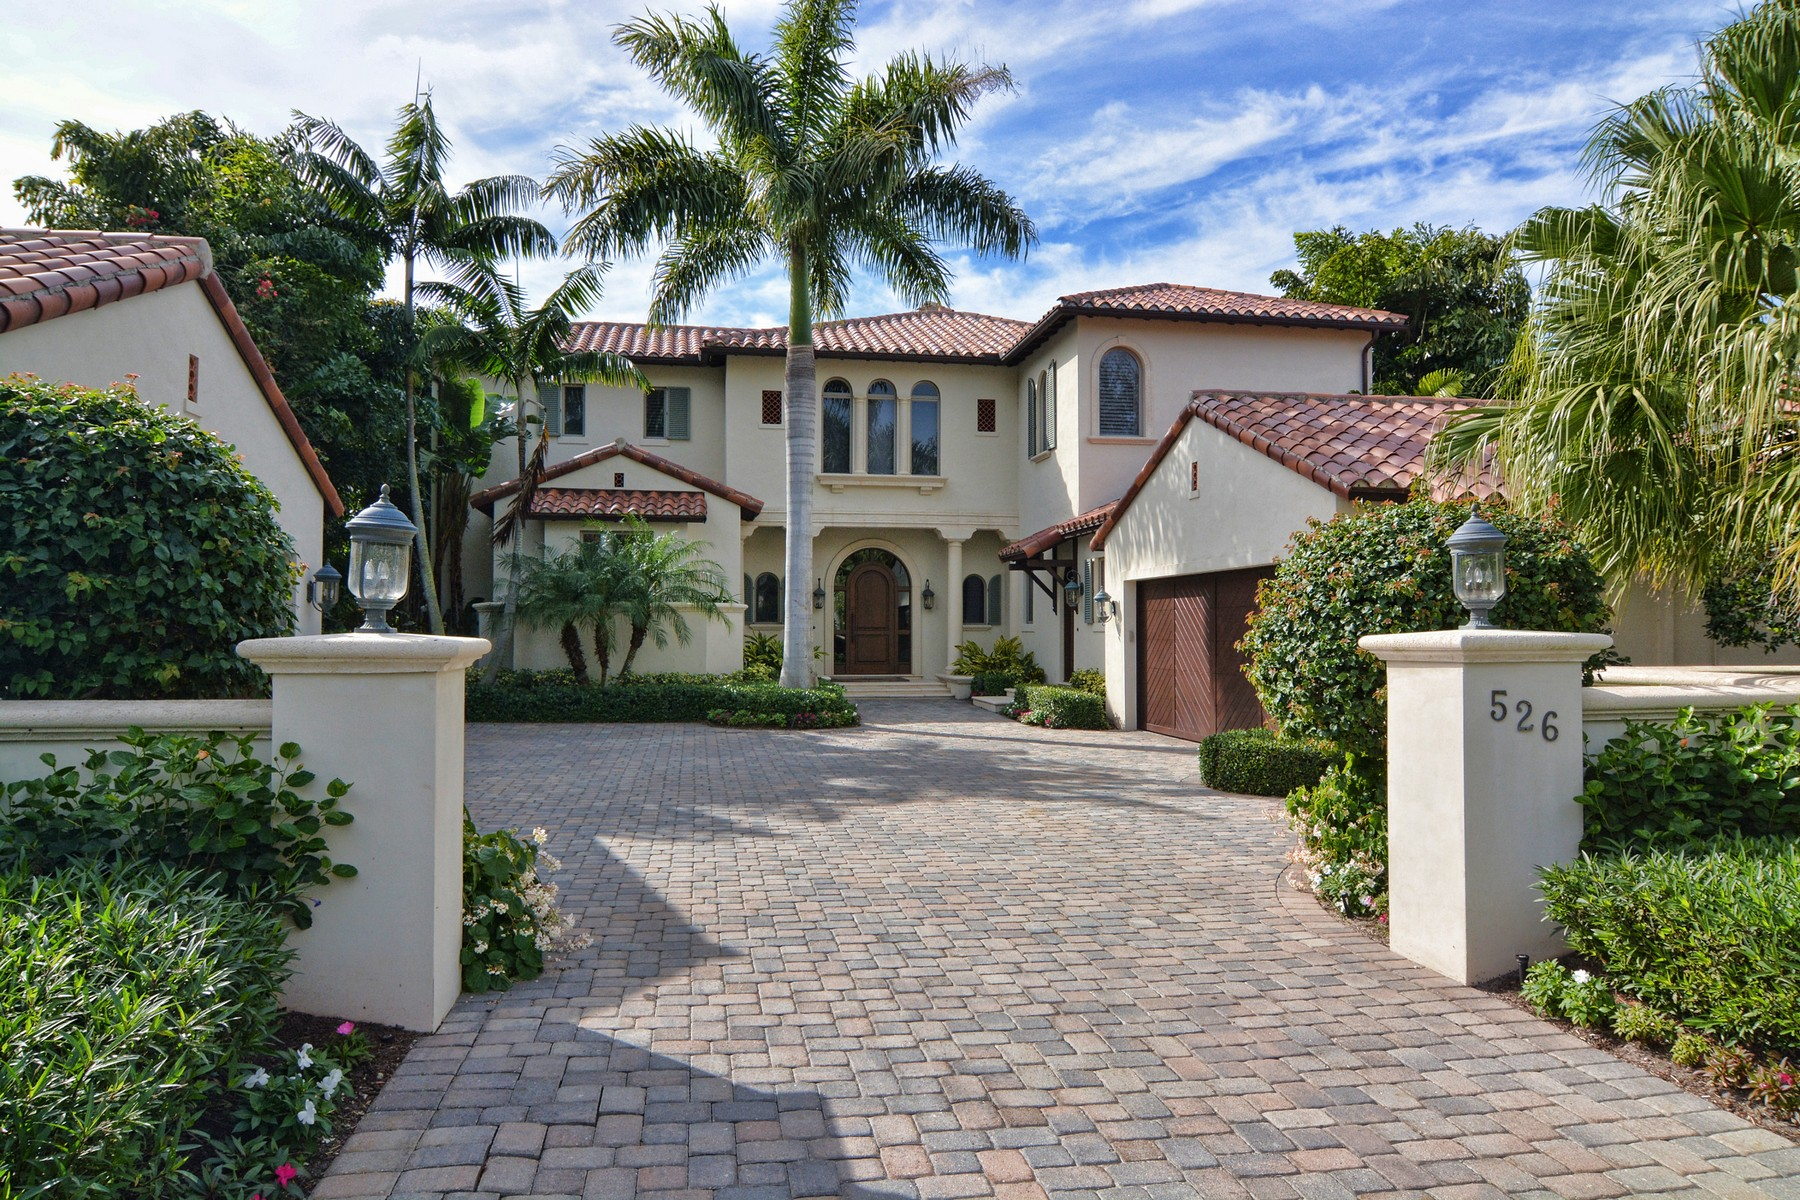 Single Family Home for Sale at 526 Bald Eagle Drive at Trump National Jupiter, Florida, 33477 United States